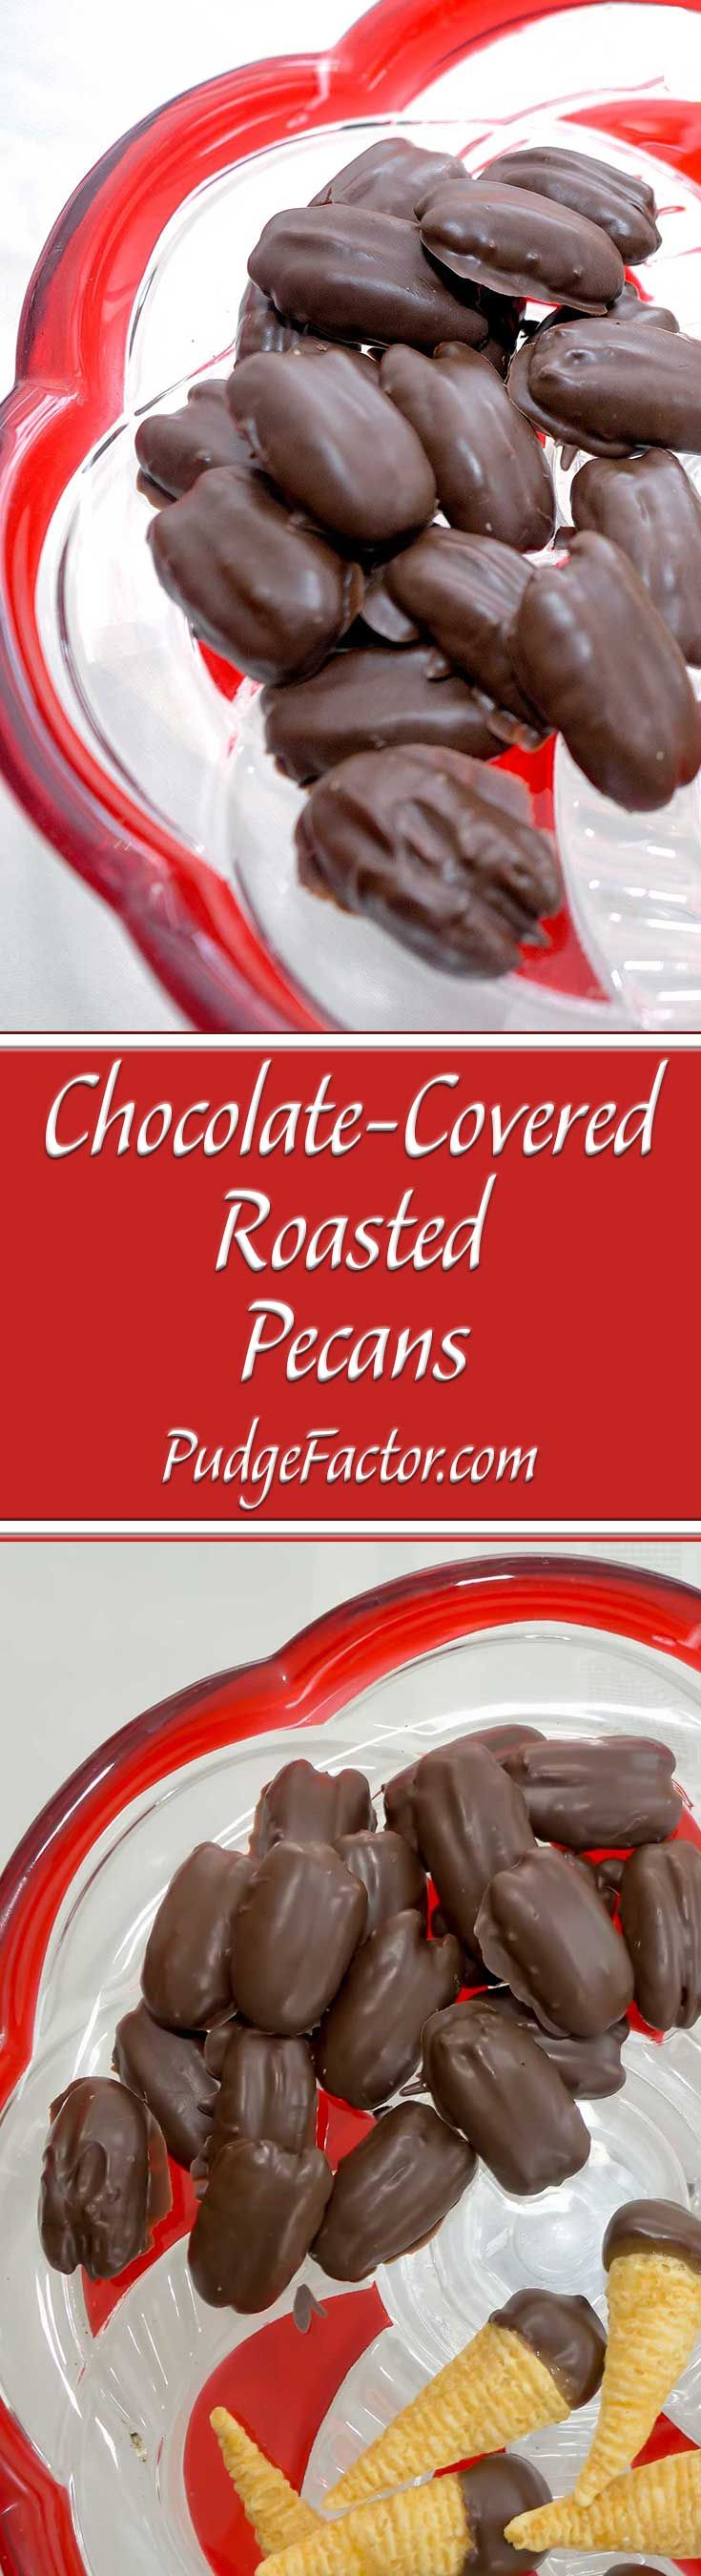 Chocolate Covered Roasted Pecans - Eat them as a snack, or give them as a holiday gift. via @c2king